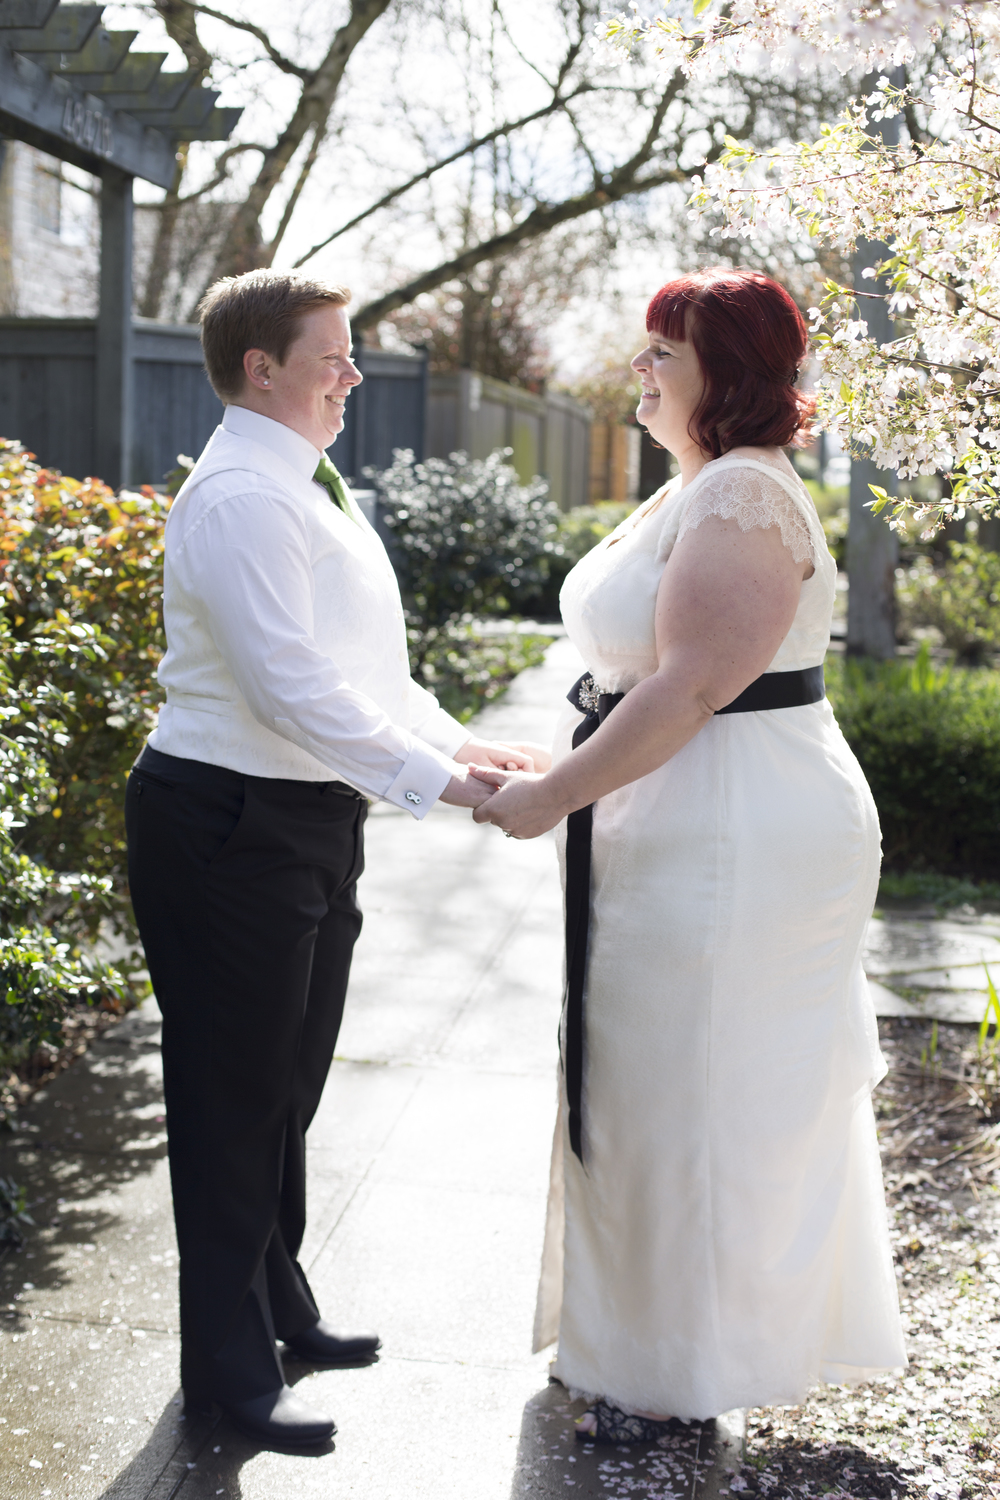 Wedding-March-2015-1.jpg